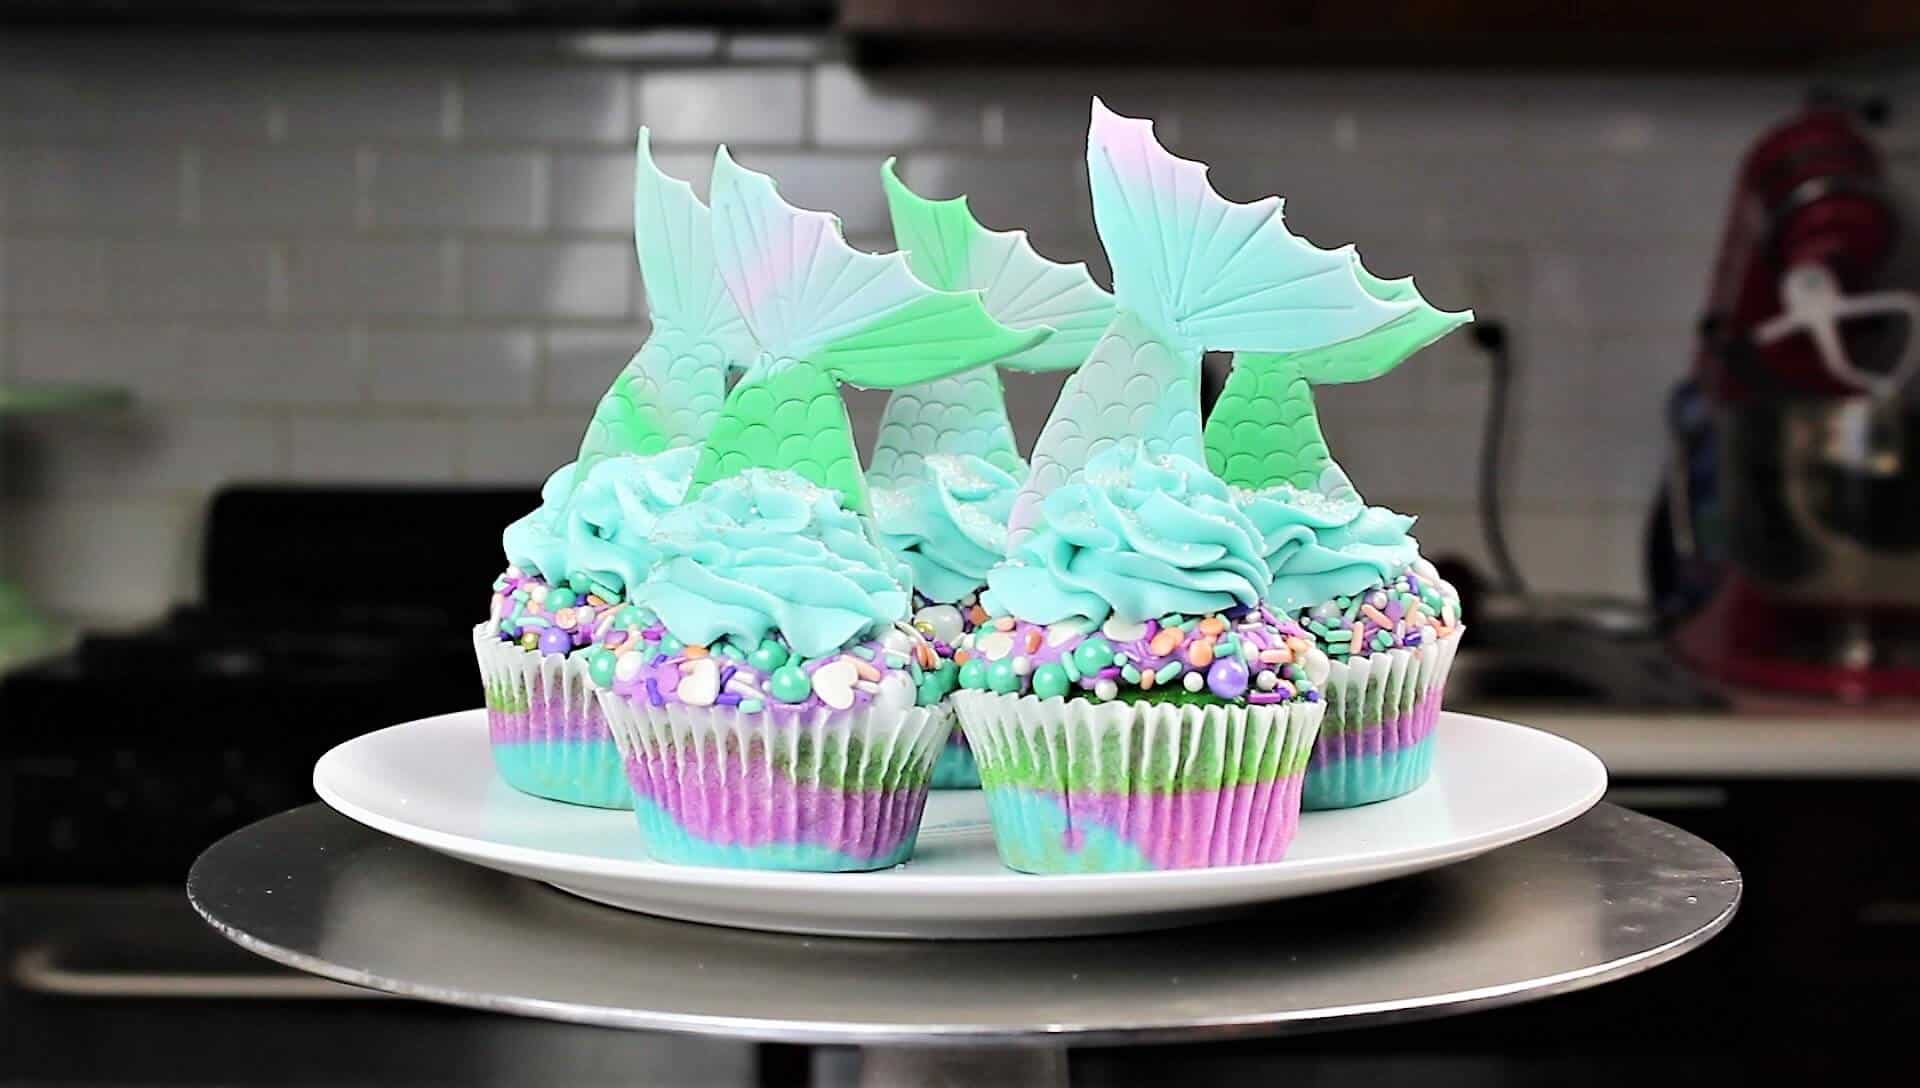 image of mermaid tail cupcakes